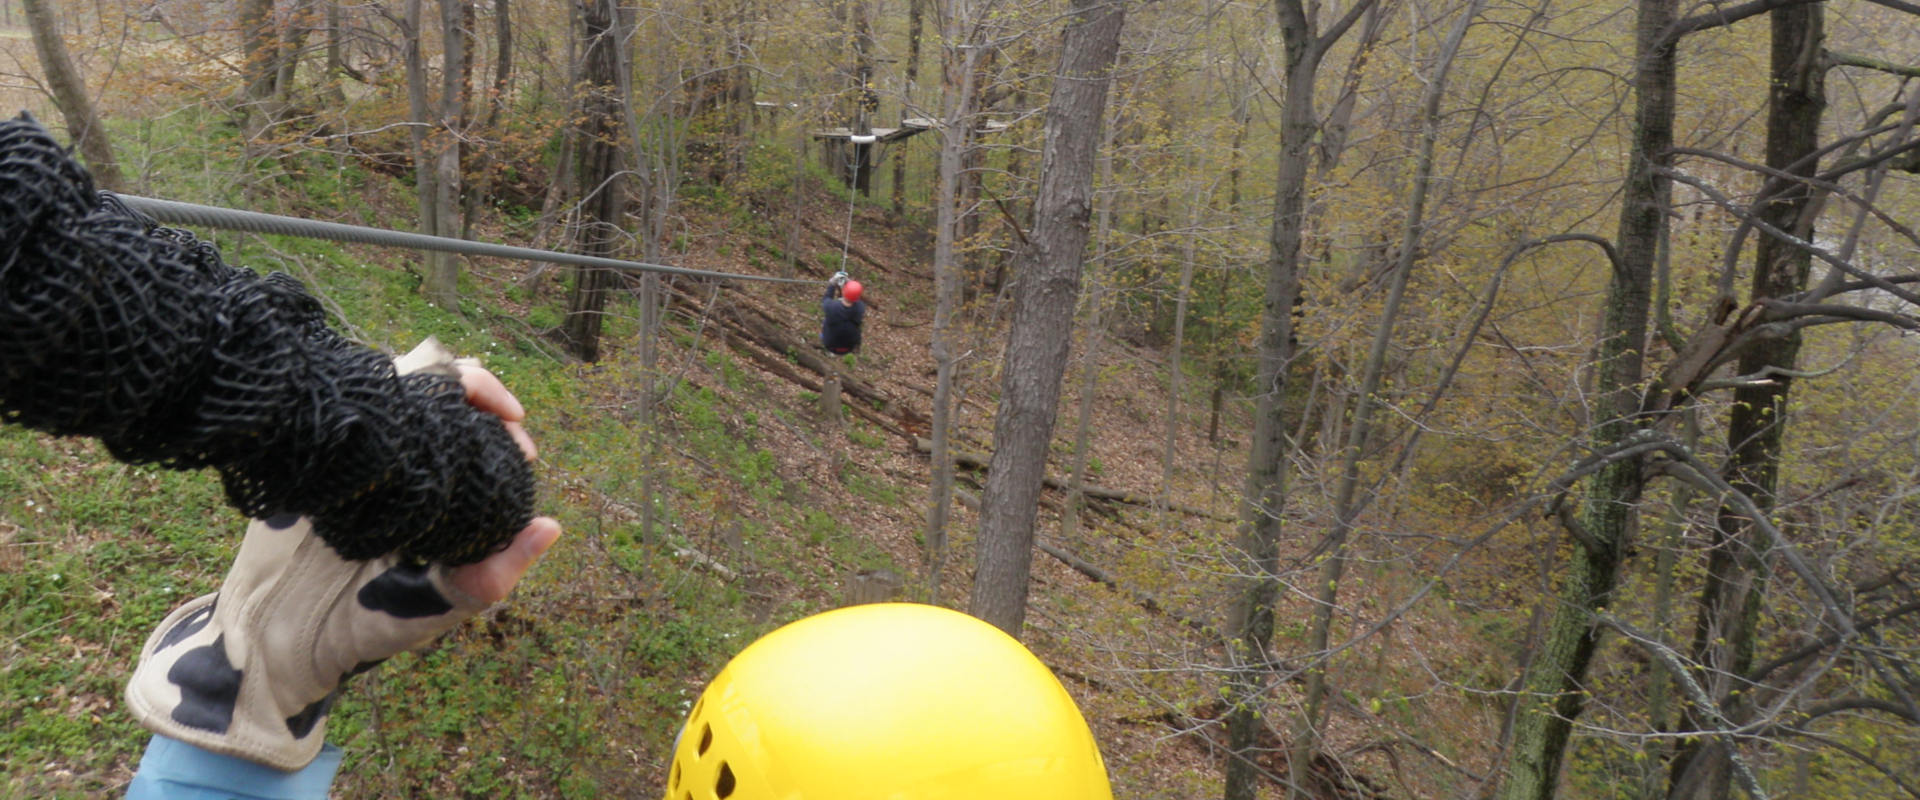 zip line and rappelling in Ontario near Garnd River Rafting